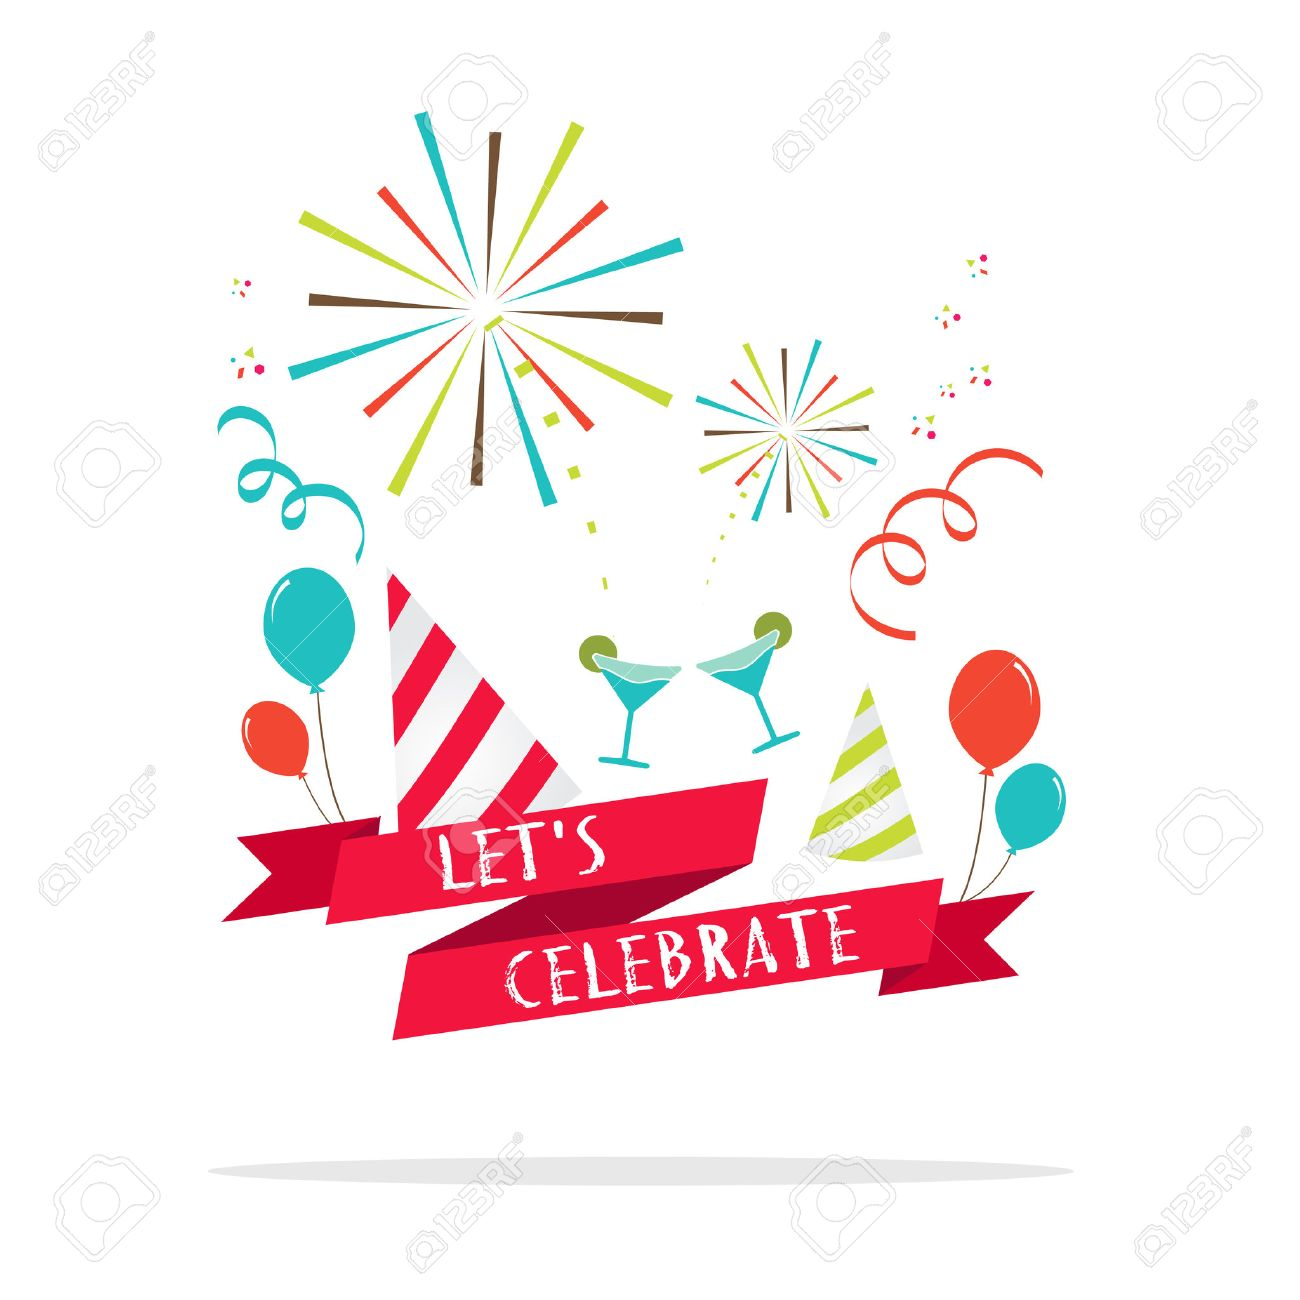 Vector : Let's celebrate banner with party icon. - 42997186